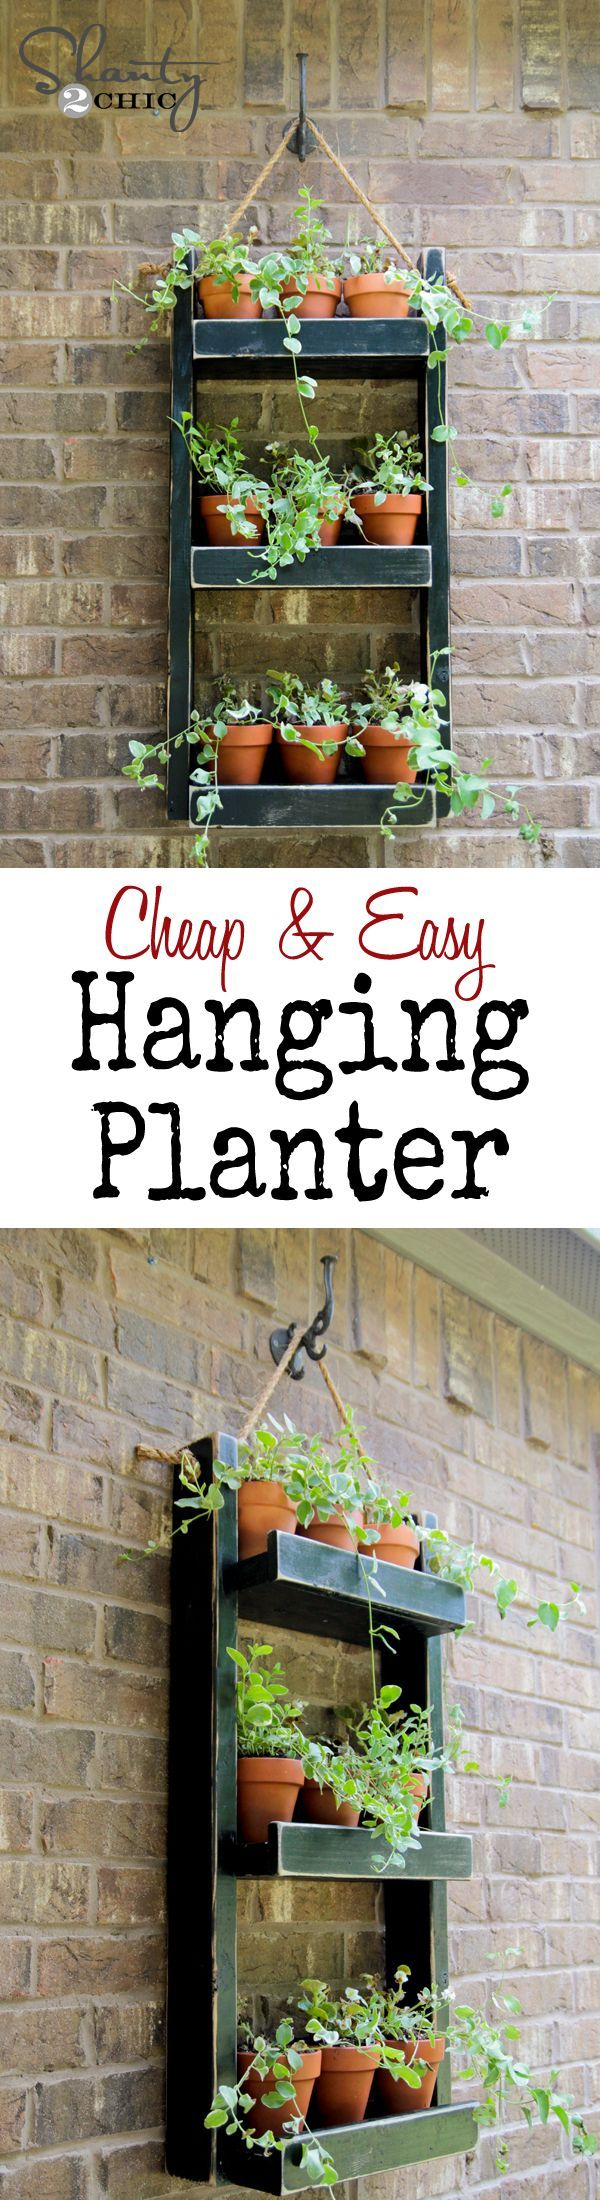 DIY- Super cheap and easy hanging planter for your home. This is also a great gift idea for your gardner friend or a house-warming gift.